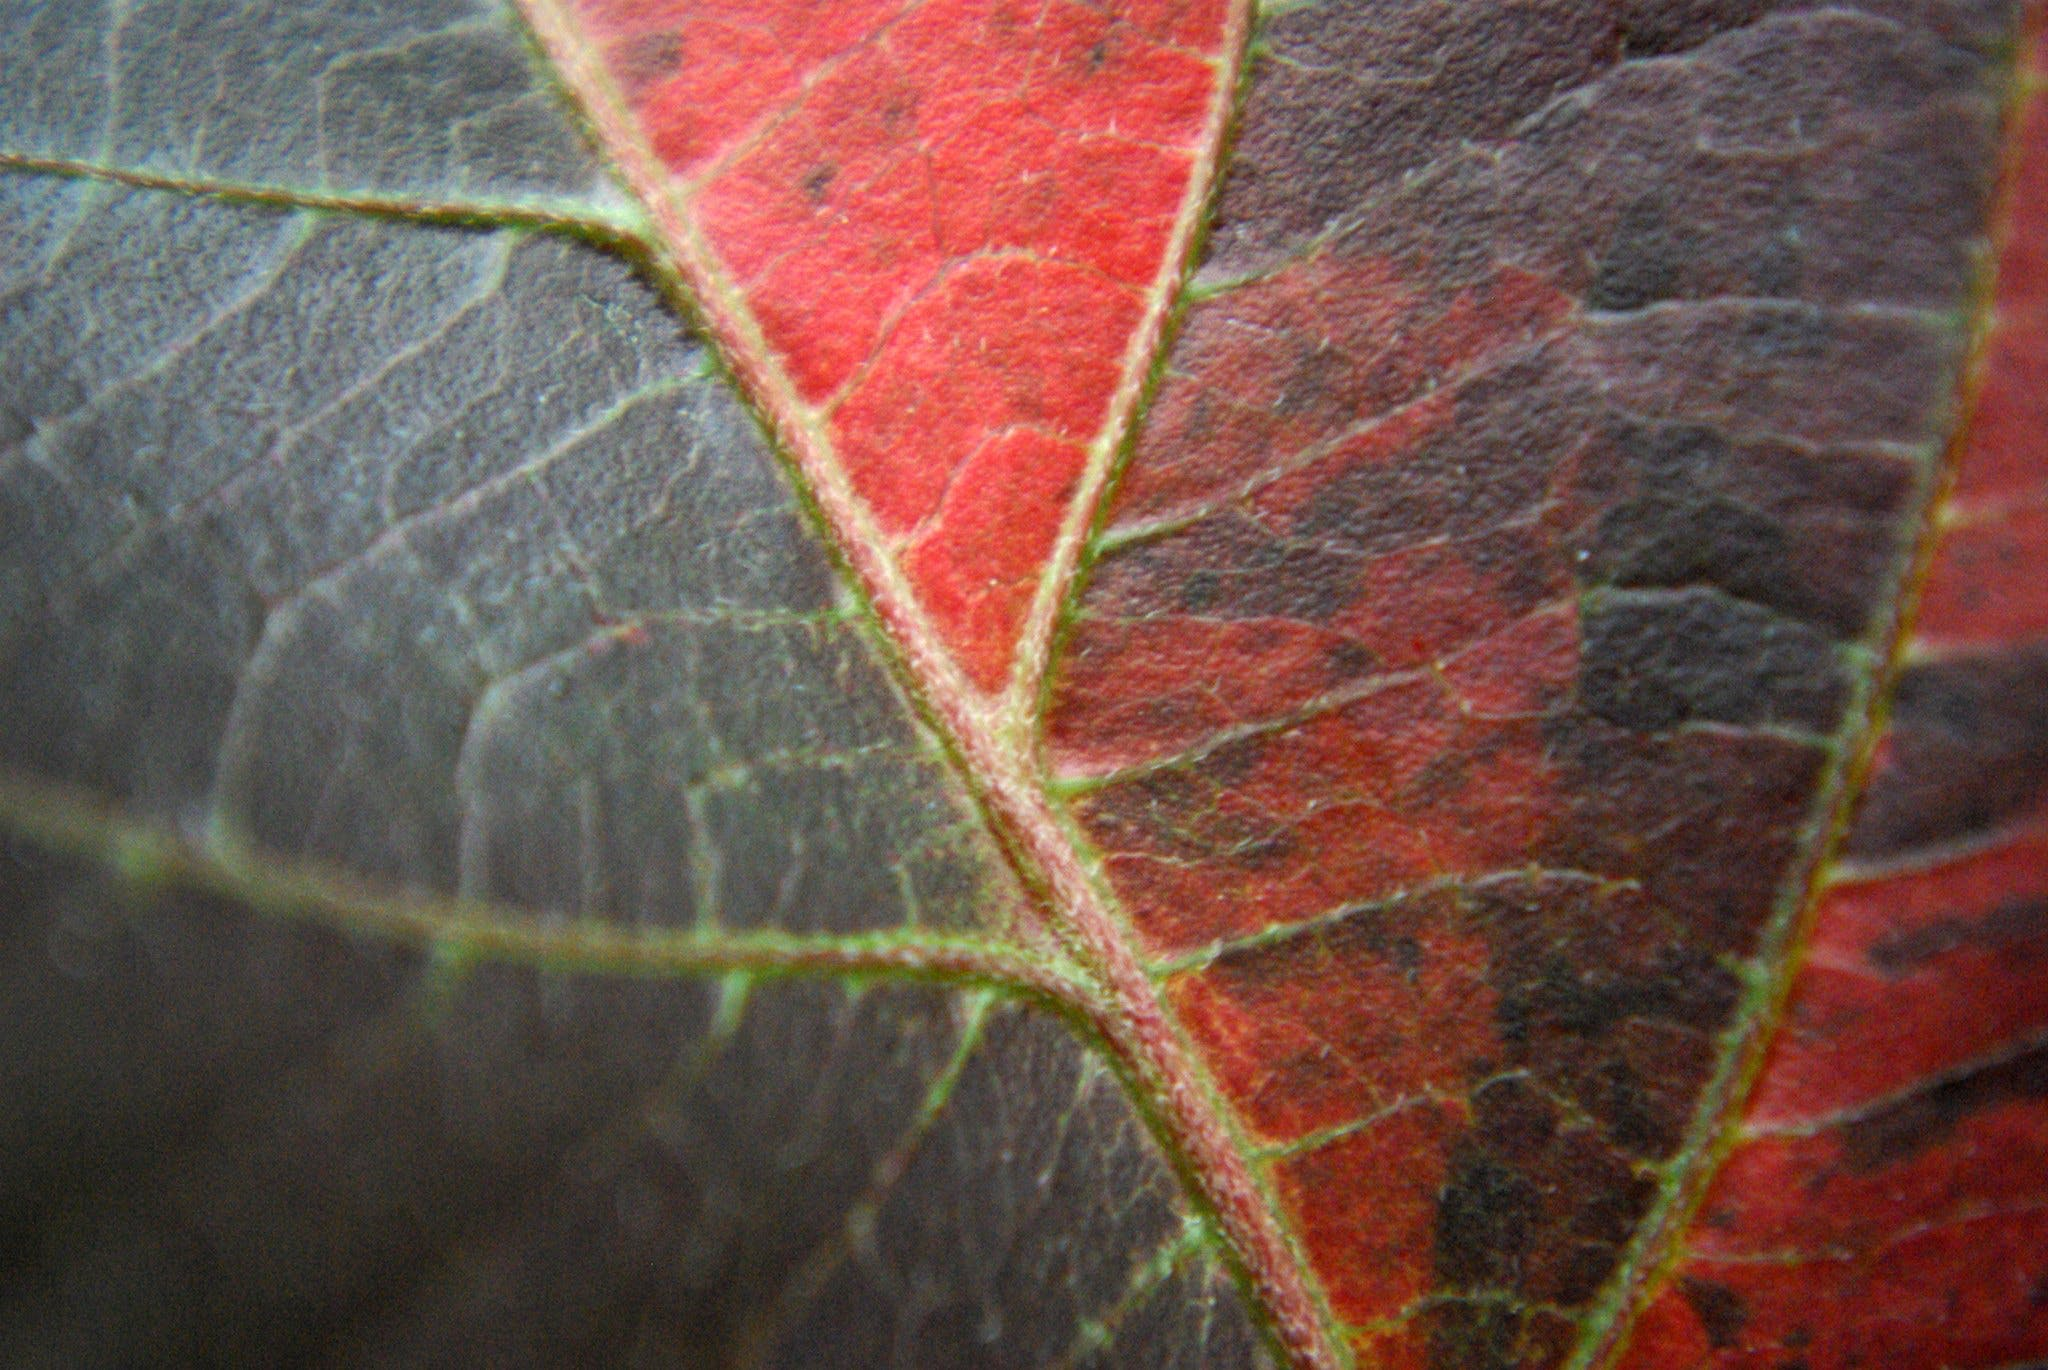 Free stock photo of leaf, nature, plant, red